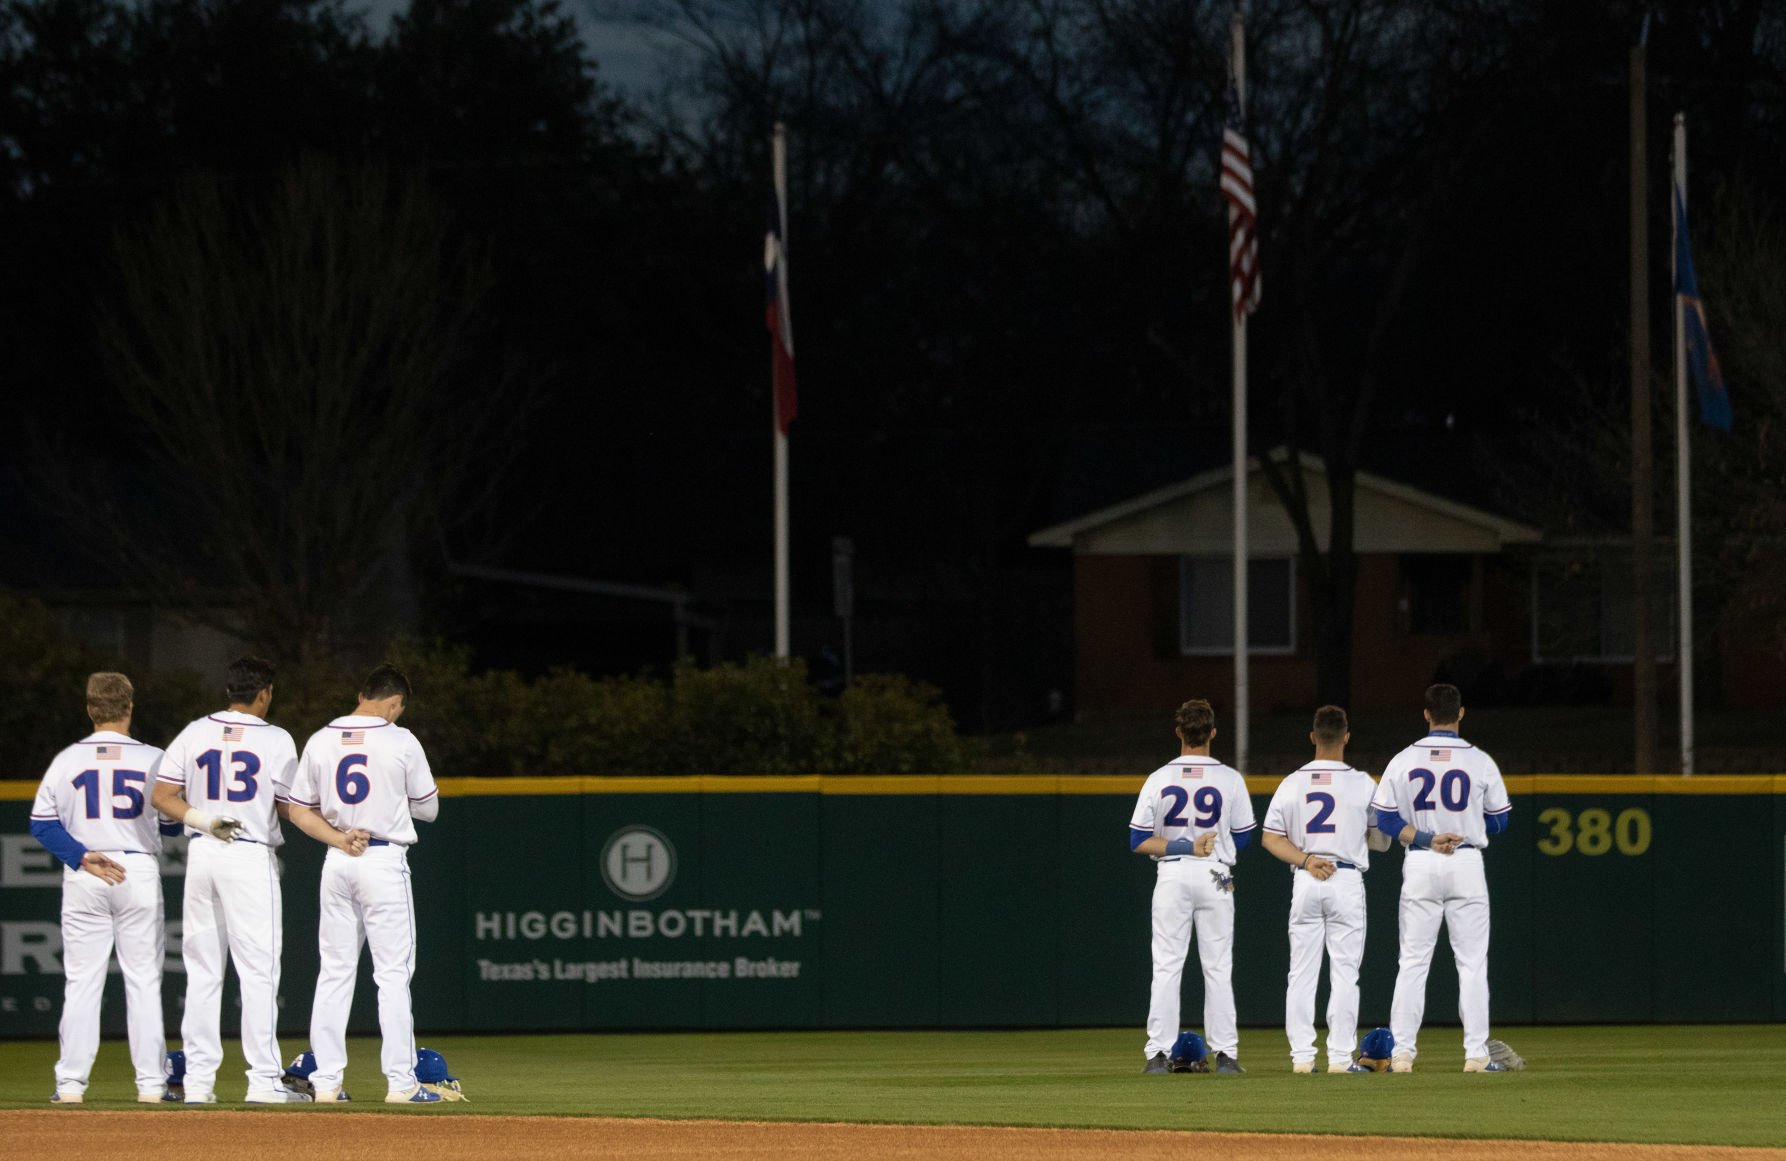 Photos: UTA baseball tames Golden Lions